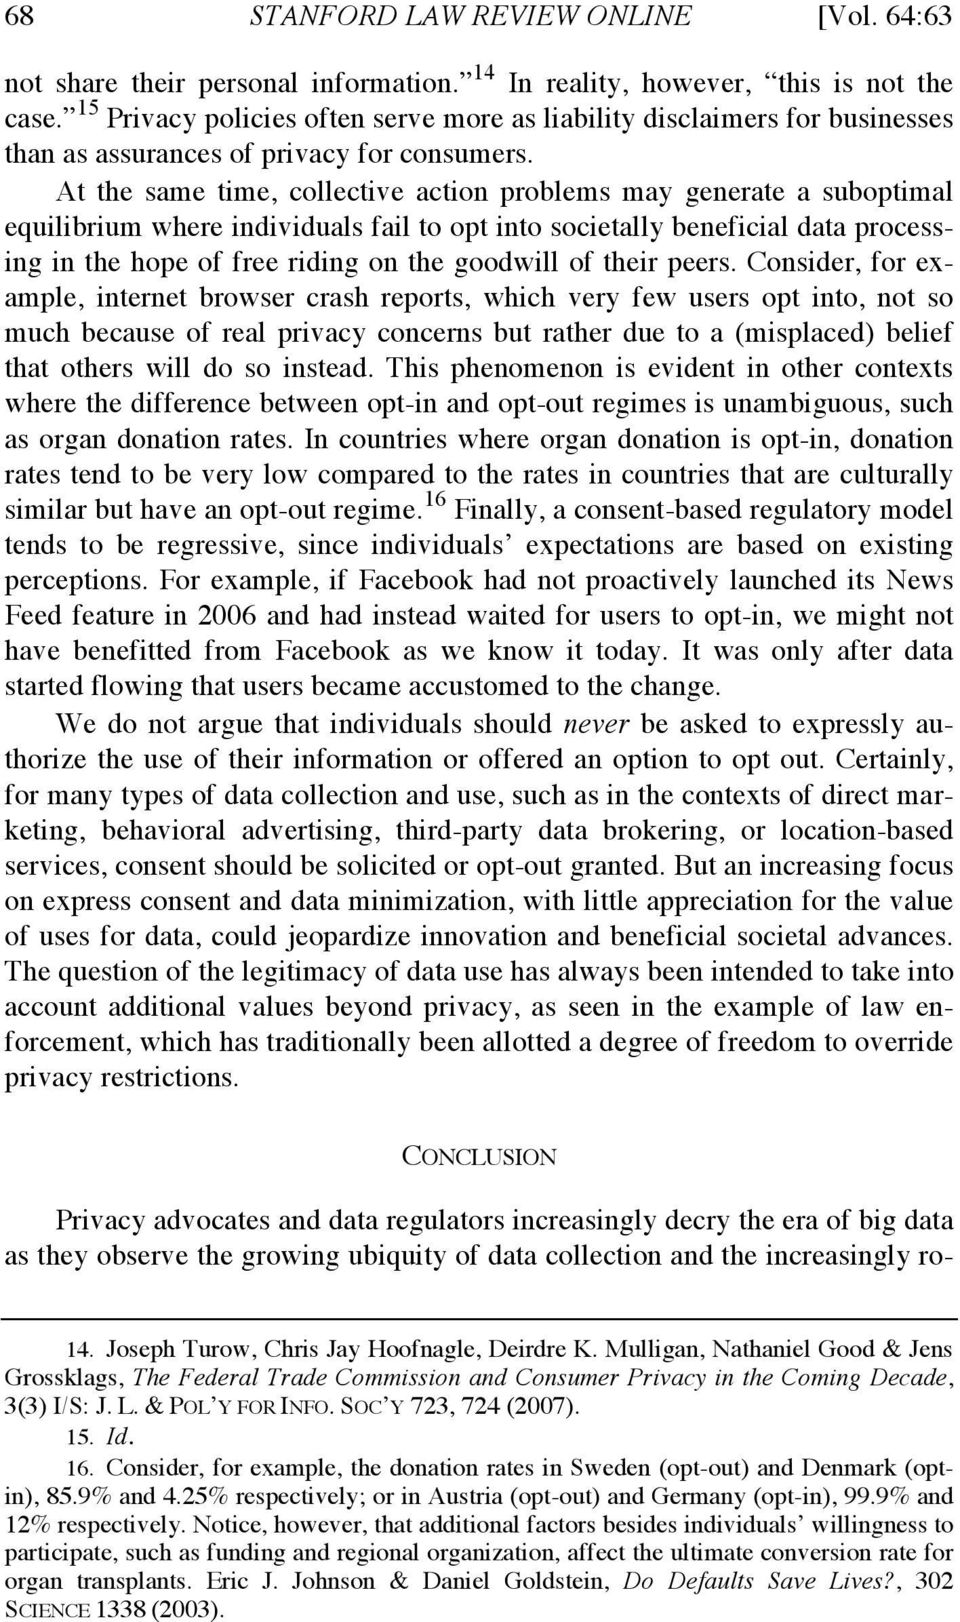 At the same time, collective action problems may generate a suboptimal equilibrium where individuals fail to opt into societally beneficial data processing in the hope of free riding on the goodwill